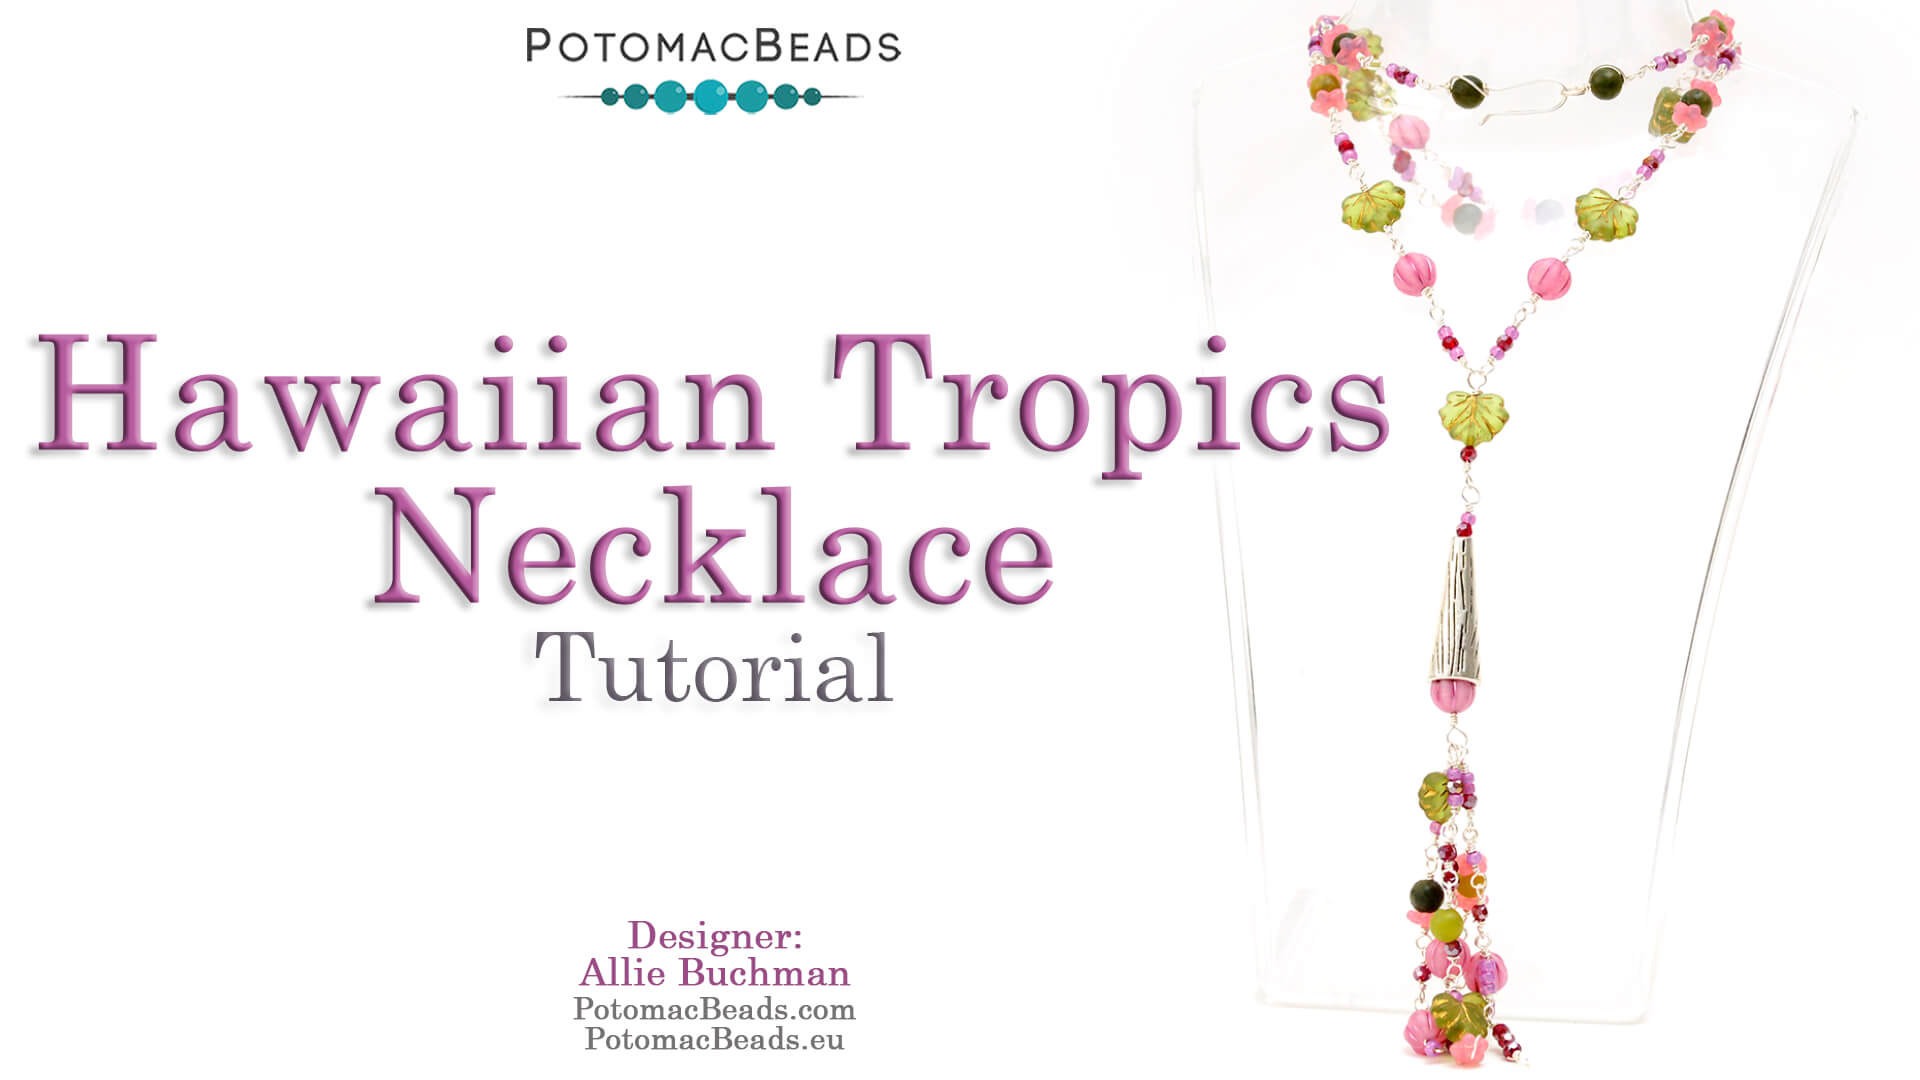 How to Bead / Videos Sorted by Beads / Potomac Crystal Videos / Hawaiian Tropics Necklace Tutorial